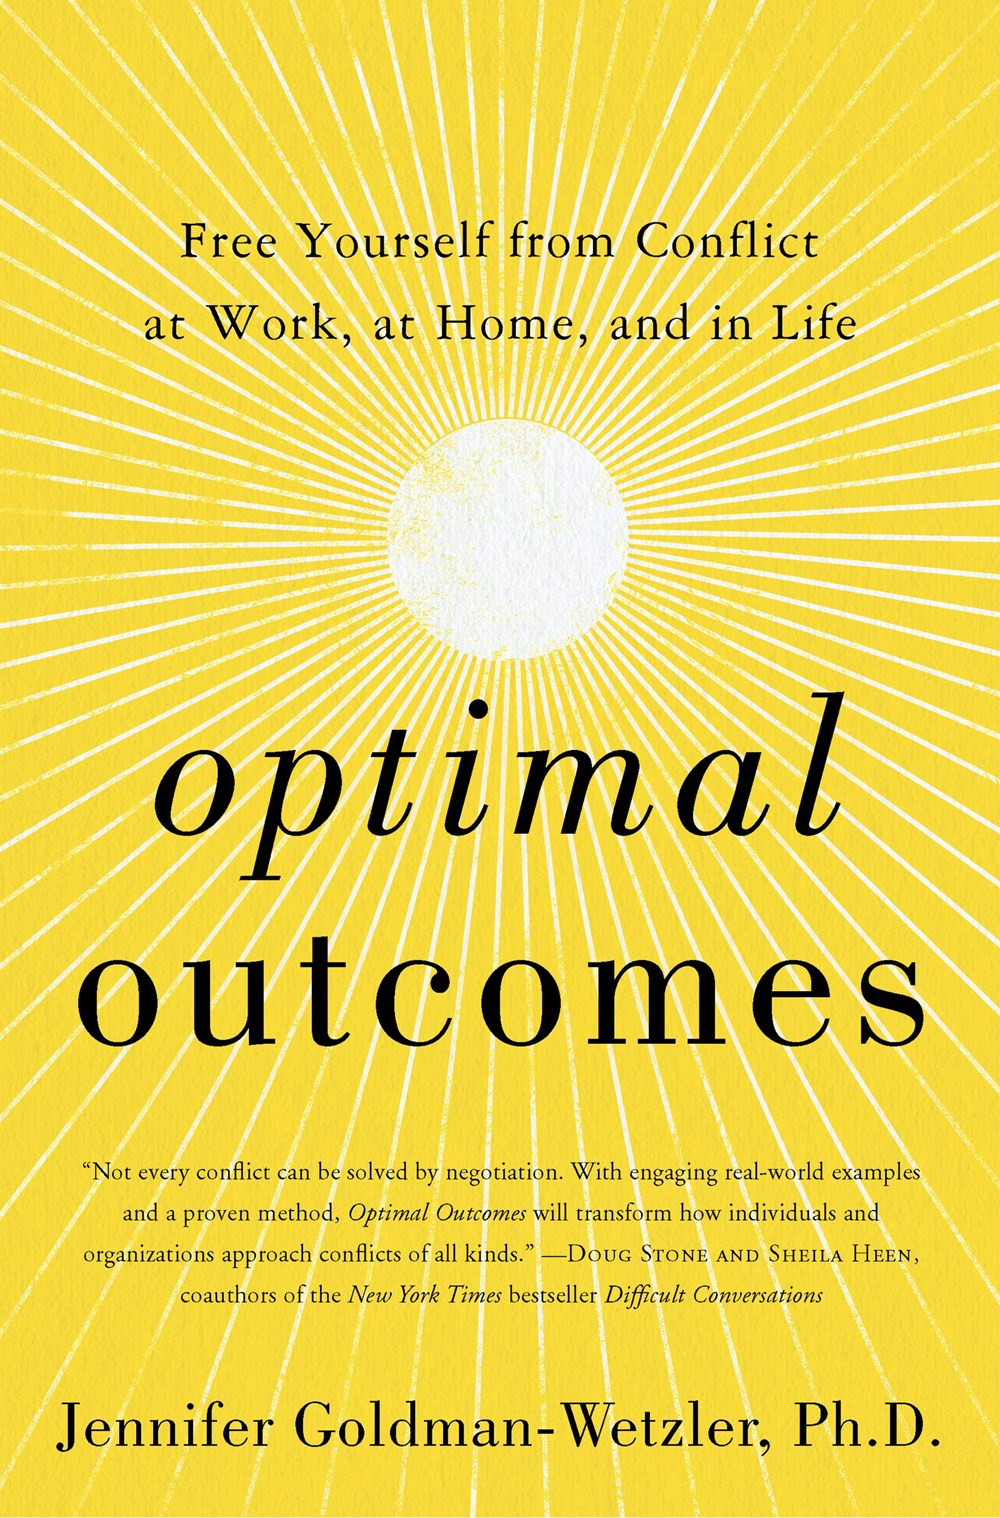 Optimal Outcomes Free Yourself from Conflict at Work, at Home, and in Life